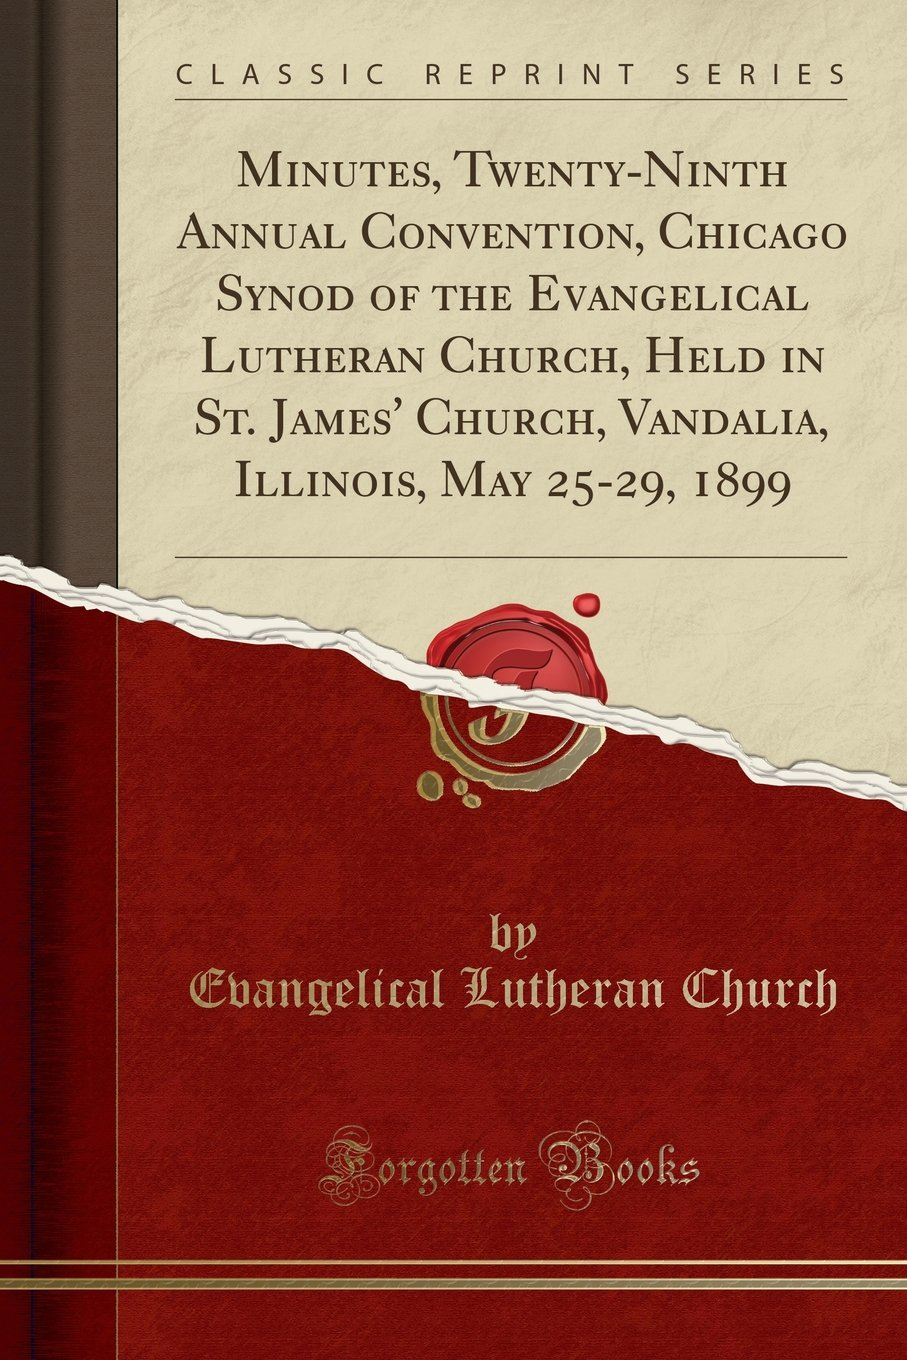 Download Minutes, Twenty-Ninth Annual Convention, Chicago Synod of the Evangelical Lutheran Church, Held in St. James' Church, Vandalia, Illinois, May 25-29, 1899 (Classic Reprint) pdf epub